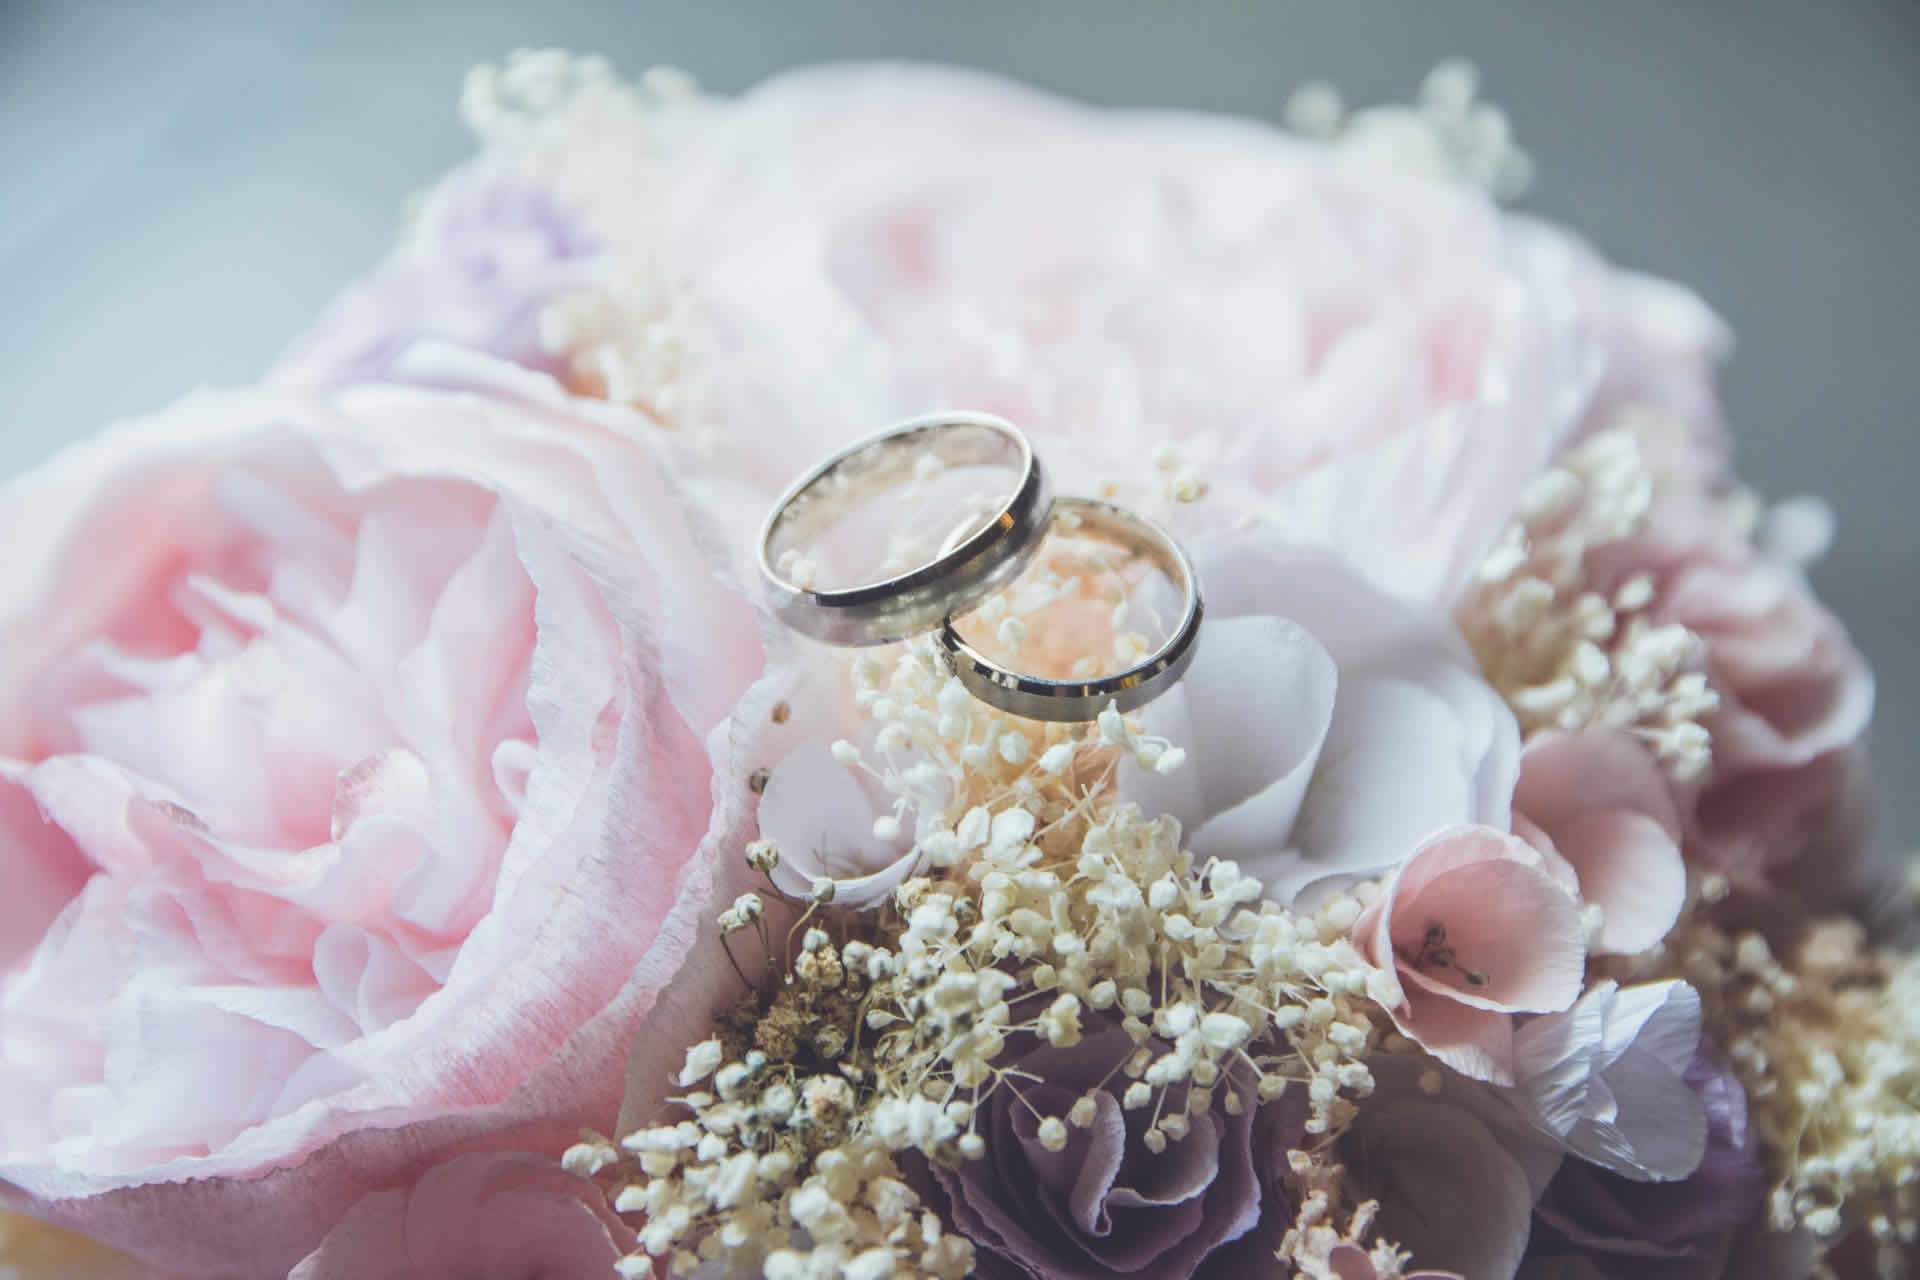 Wedding flowers and rings - Shane Black Magician - Wedding Blog